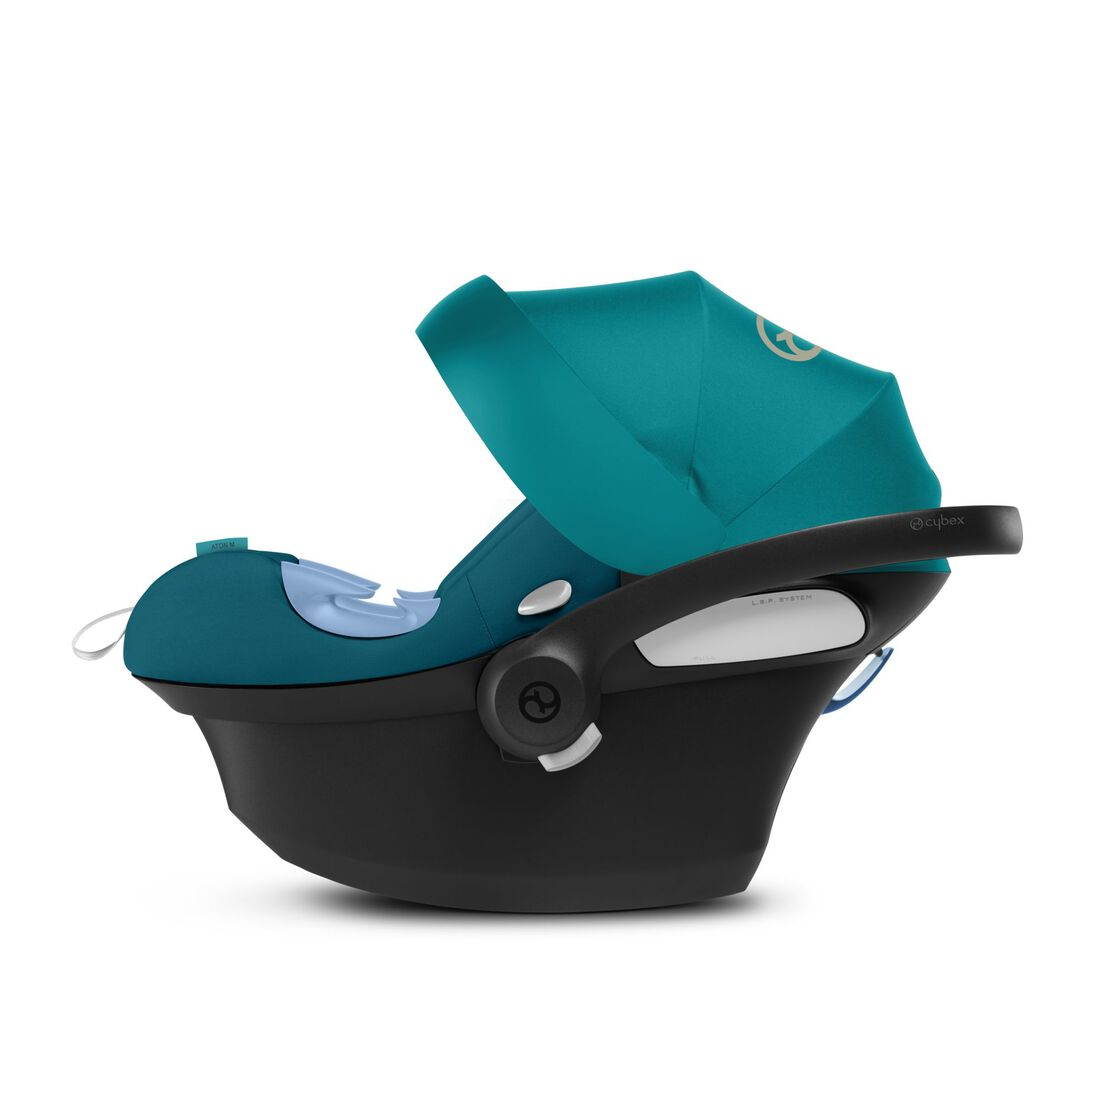 CYBEX Aton M i-Size - River Blue in River Blue large image number 4